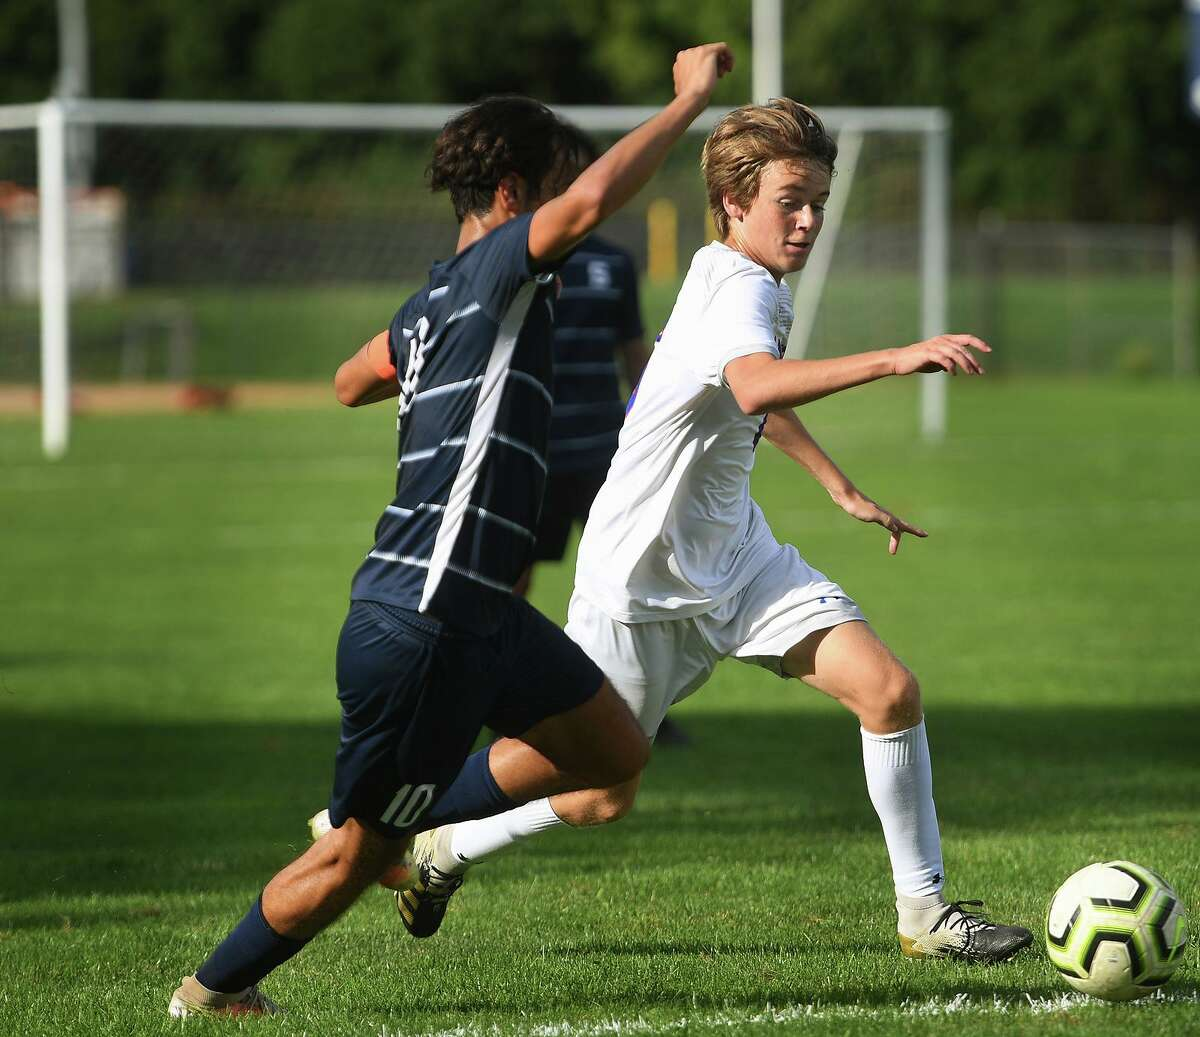 Danbury's Noah Fagan works the ball upfield defended by Staples' Murilo Moreno during their FCIAC boys soccer game at Staples High School in Westport, Conn. on Wednesday, September 22, 20i21.